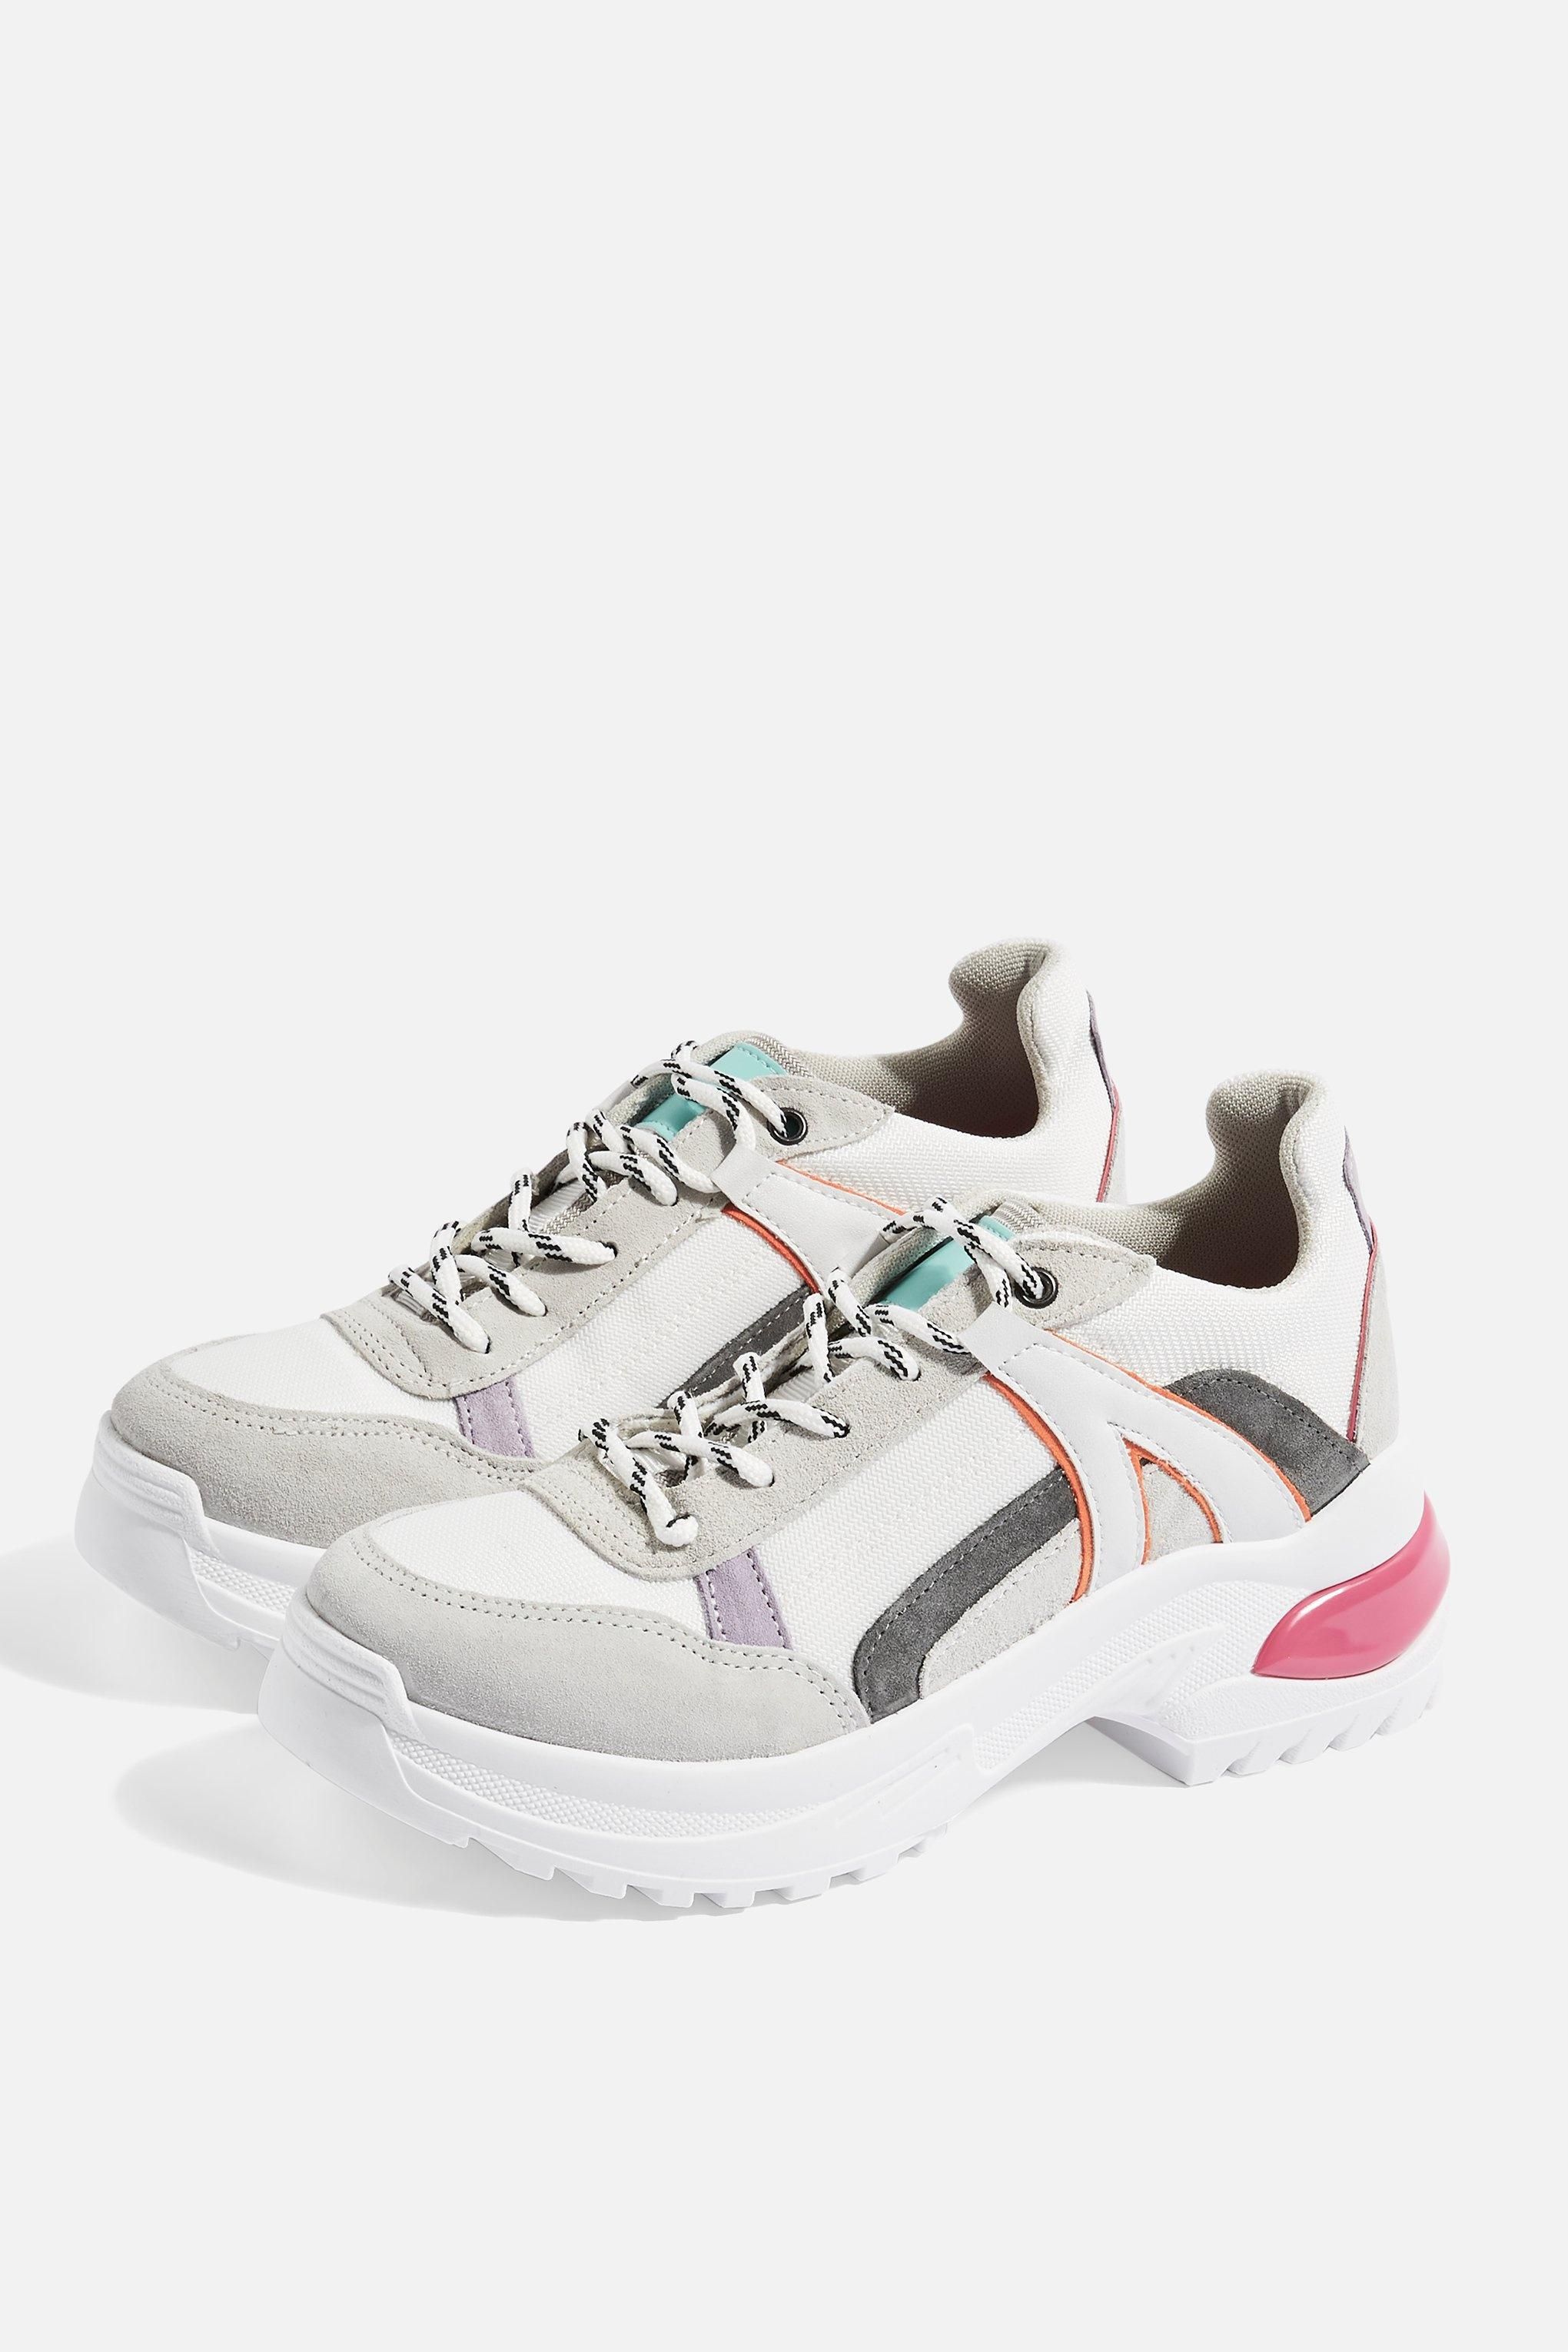 Topshop Trainers Chicago Lyst Up Lace tdsxhQrC